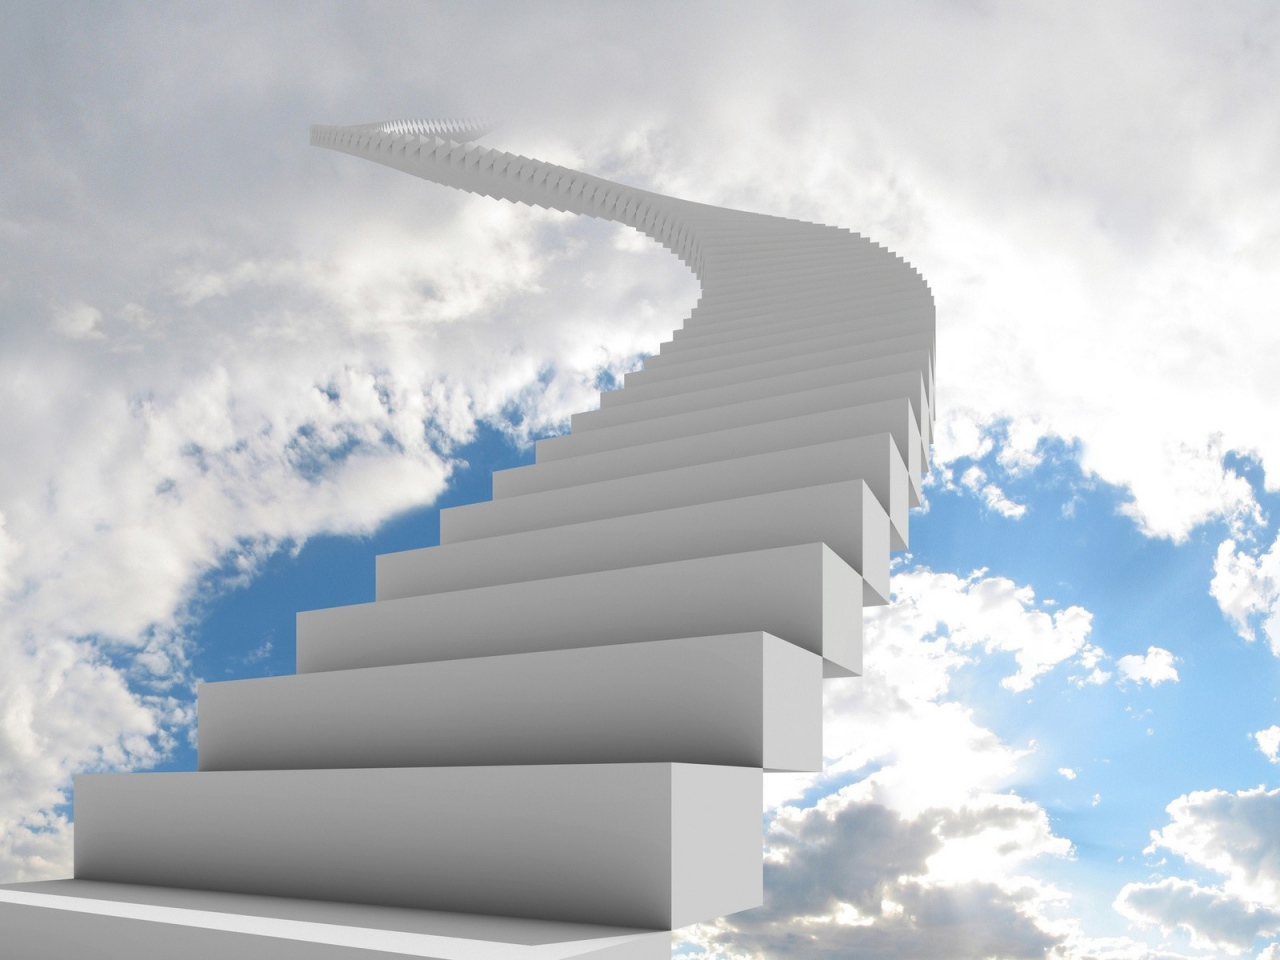 ladder-clouds- way-goal